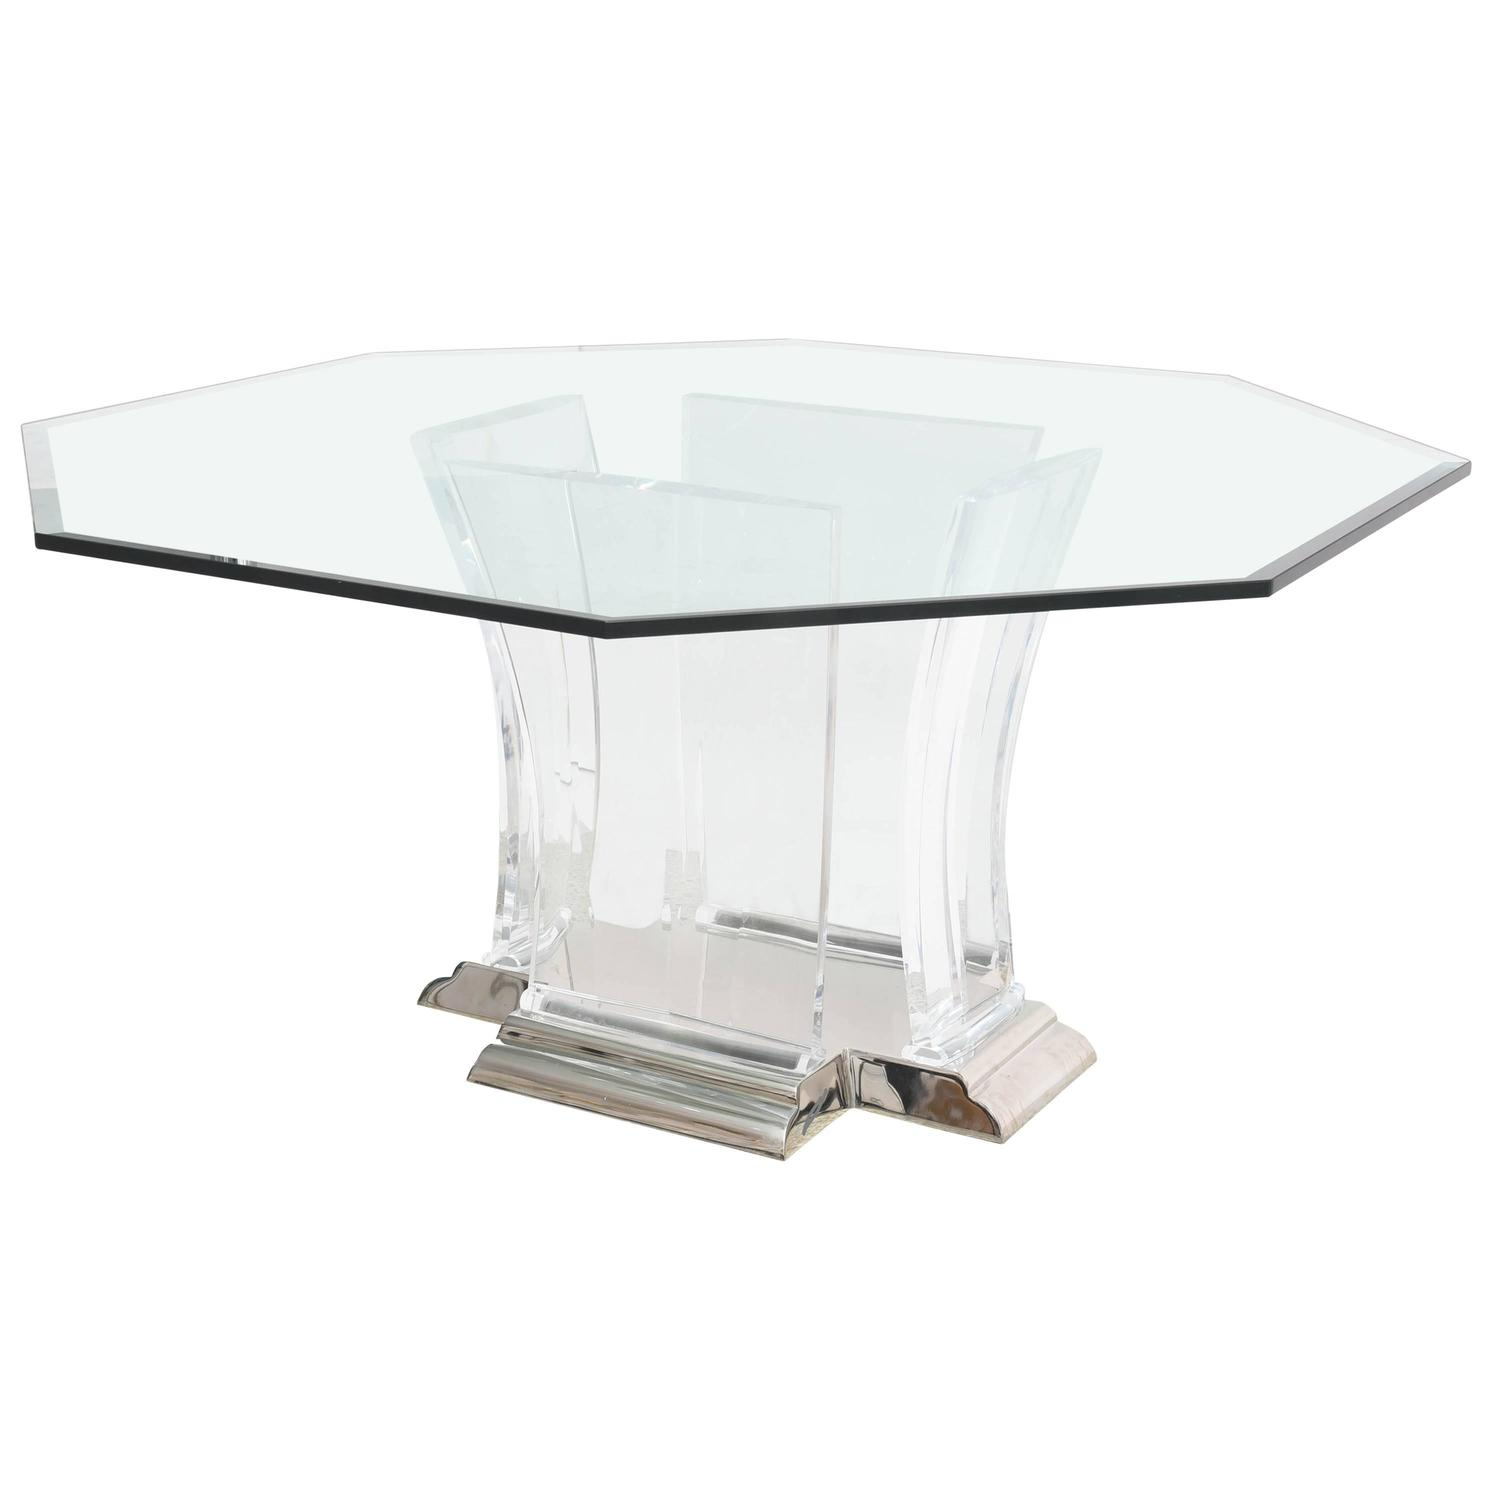 Lucite Dining Room Table: Octagonal Dining Table In Lucite, Glass And Polished